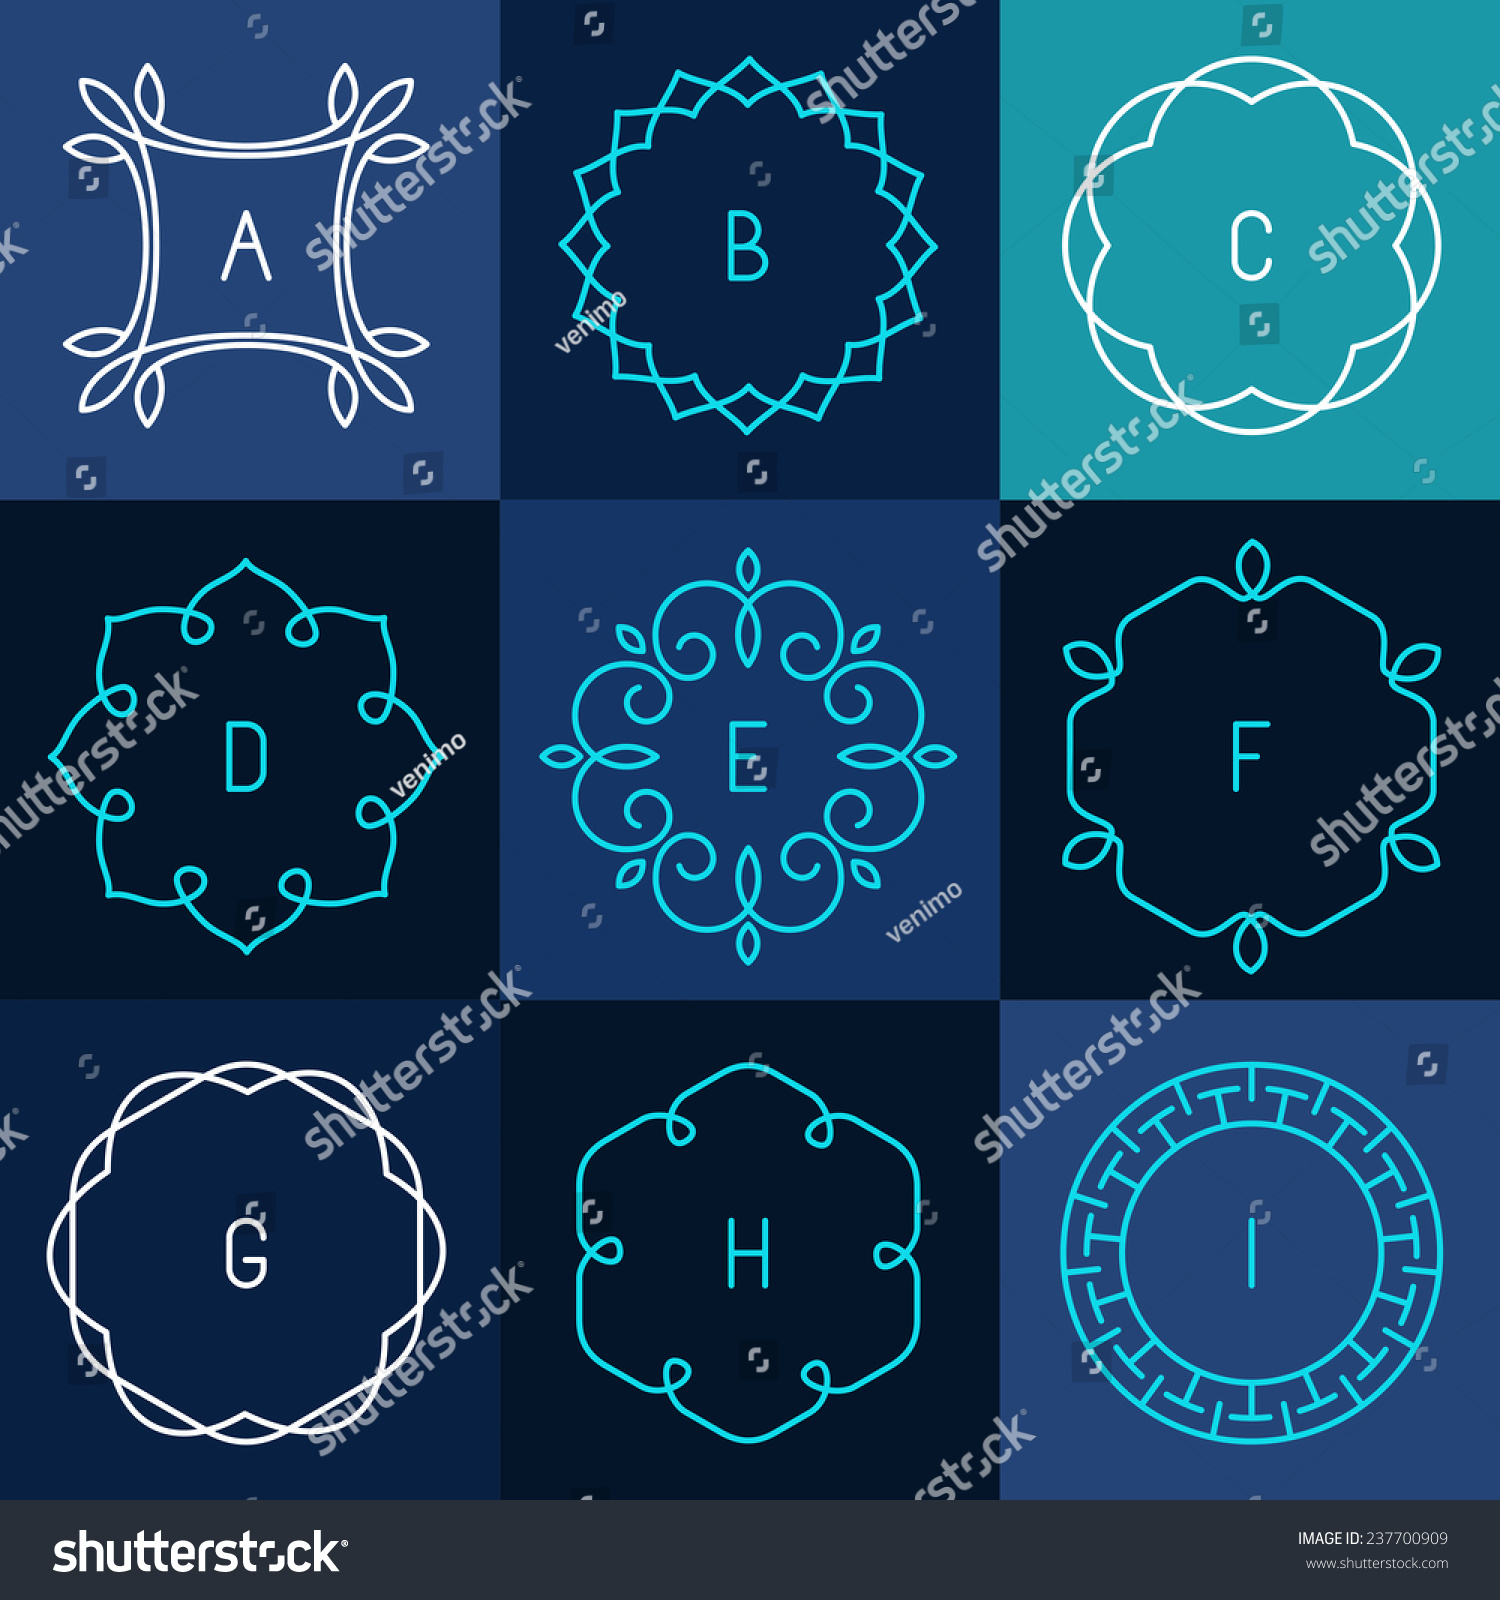 Graphic Design Elements Line : Vector set of abstract frames and logo templates in line